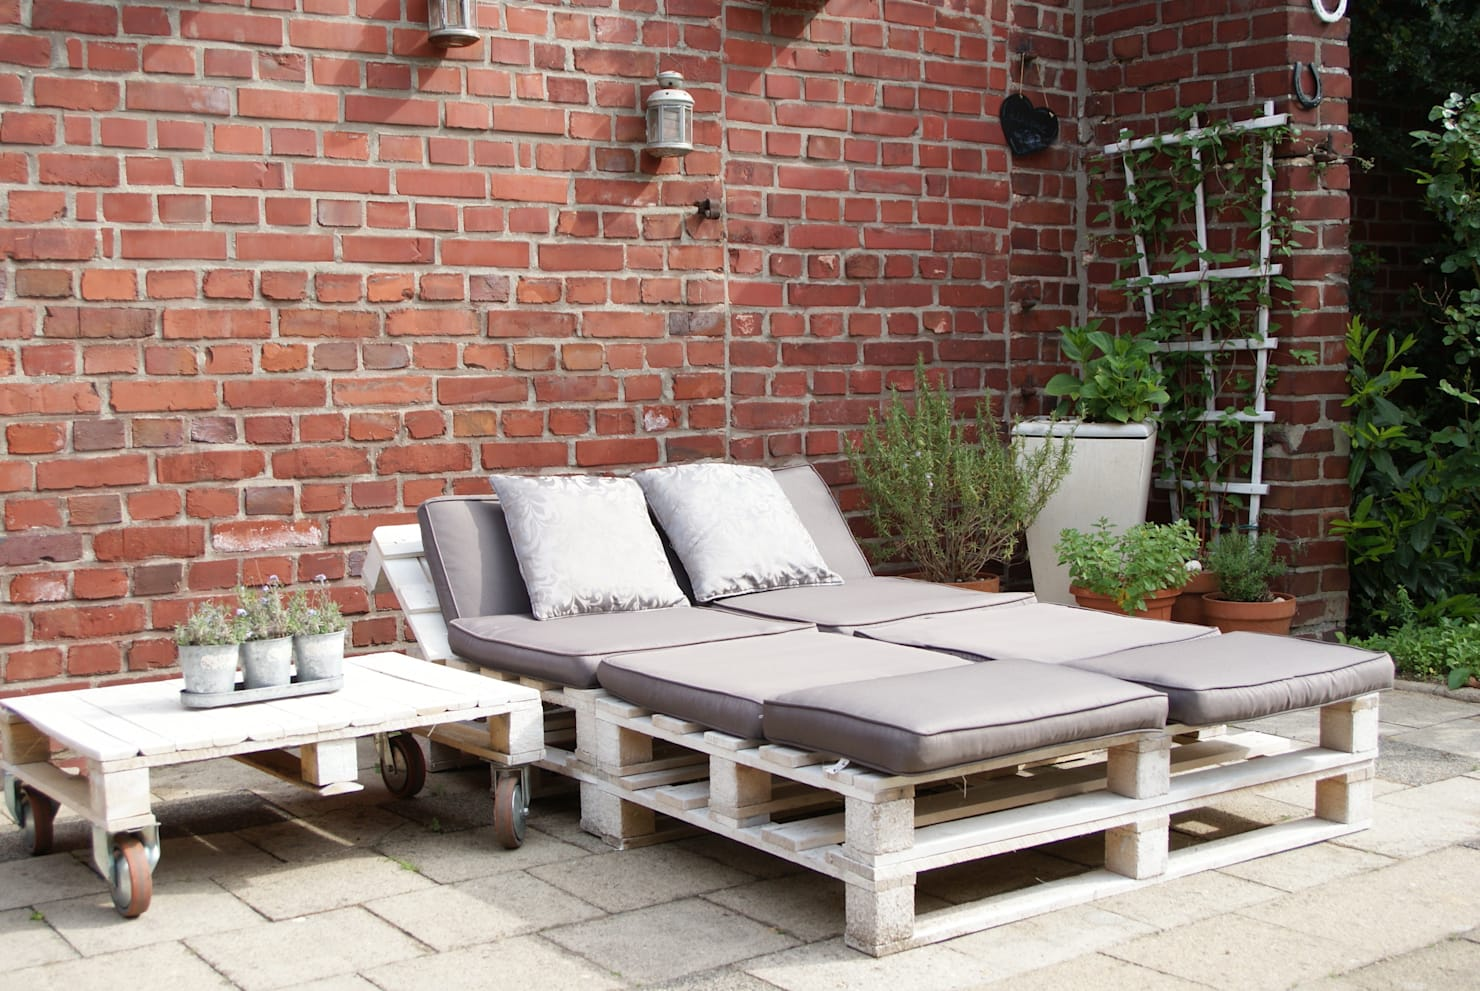 30 amazing furniture ideas to pimp up your outdoor spaces